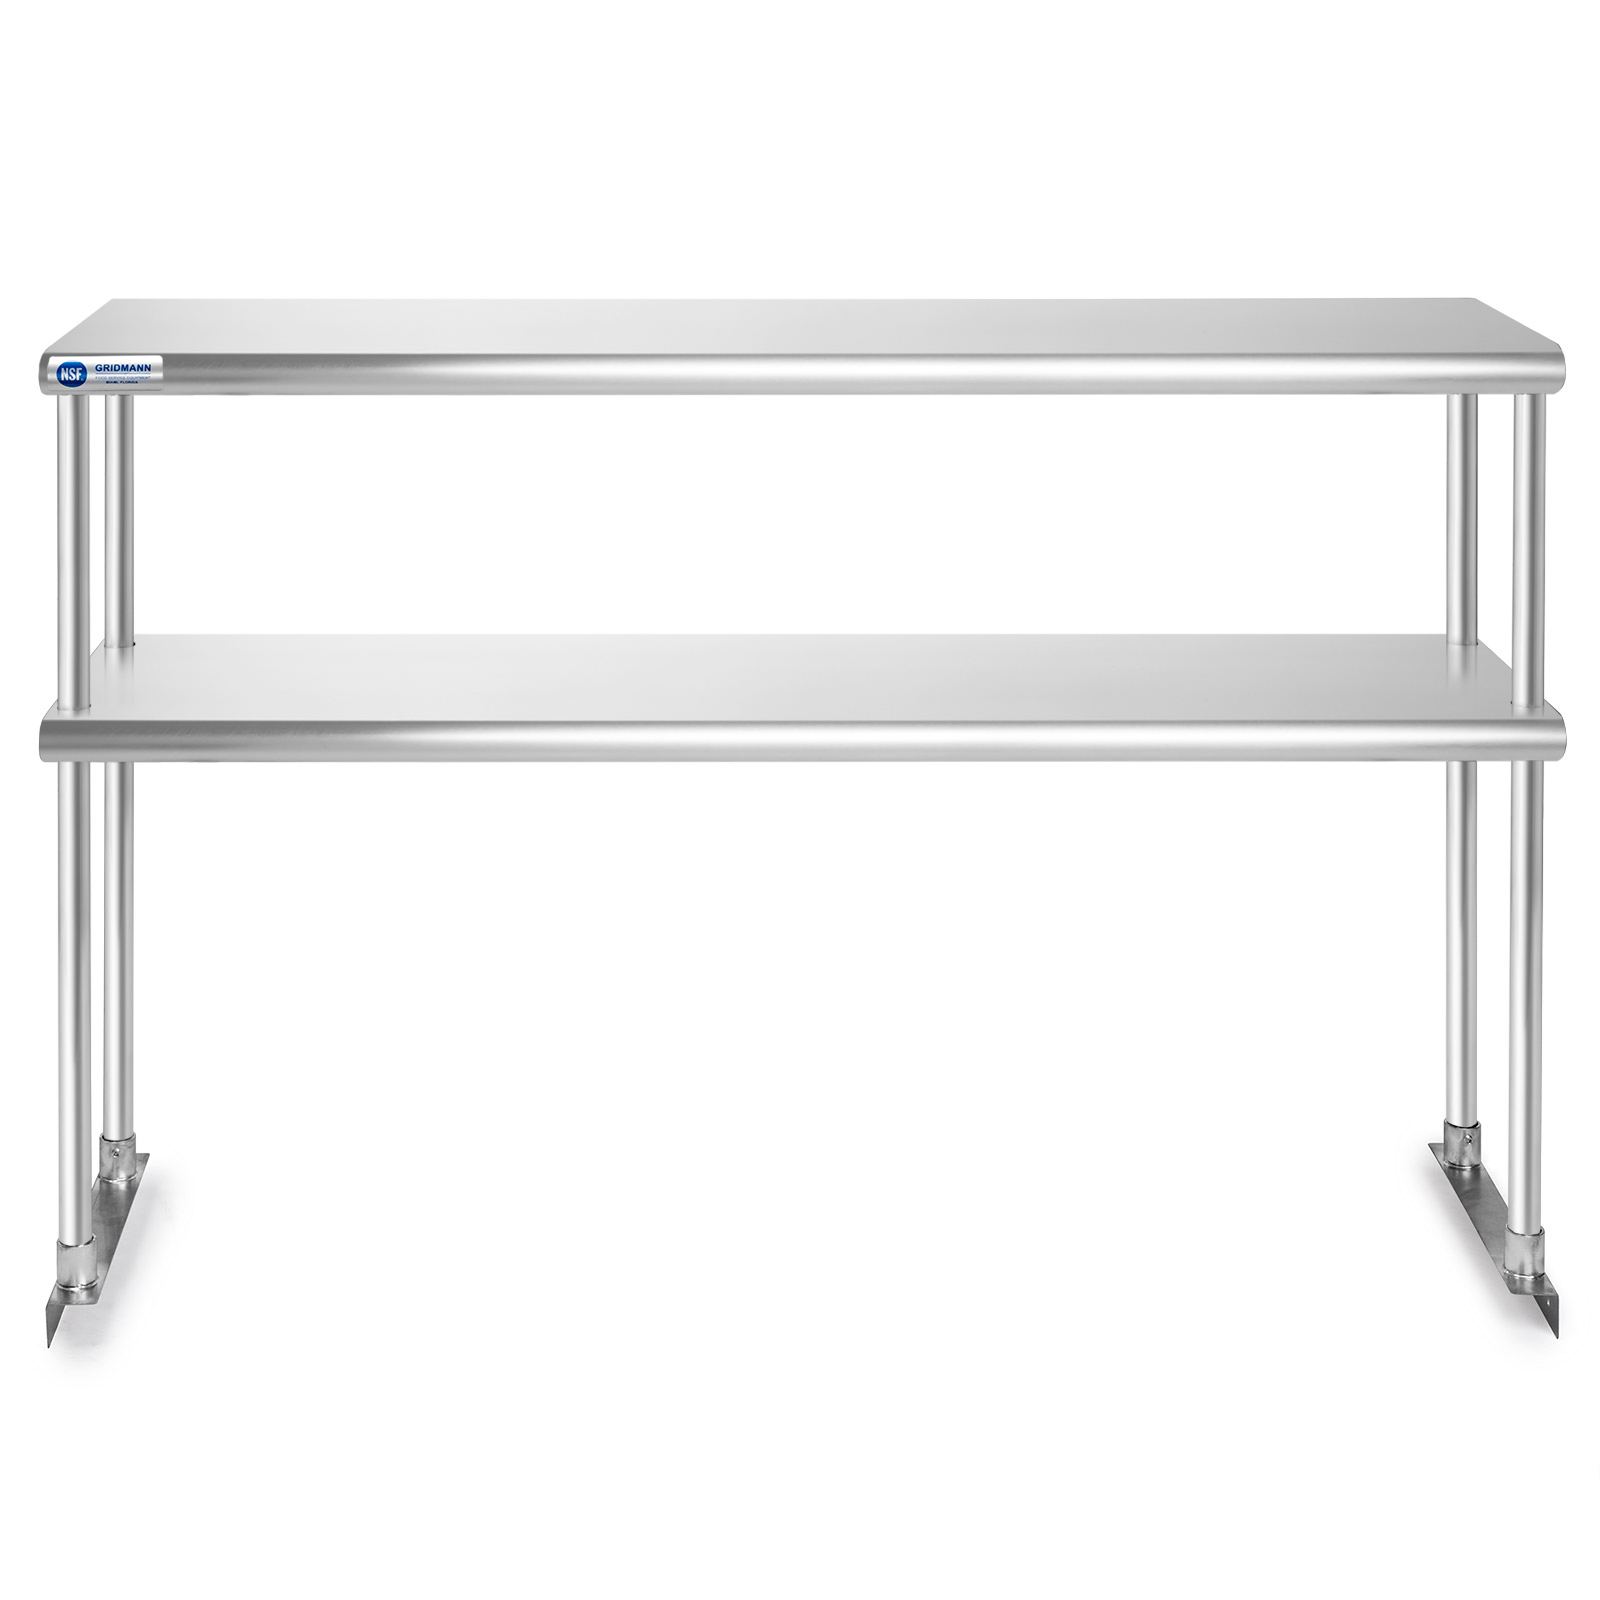 prep tables for kitchen sink snake stainless steel commercial table with double